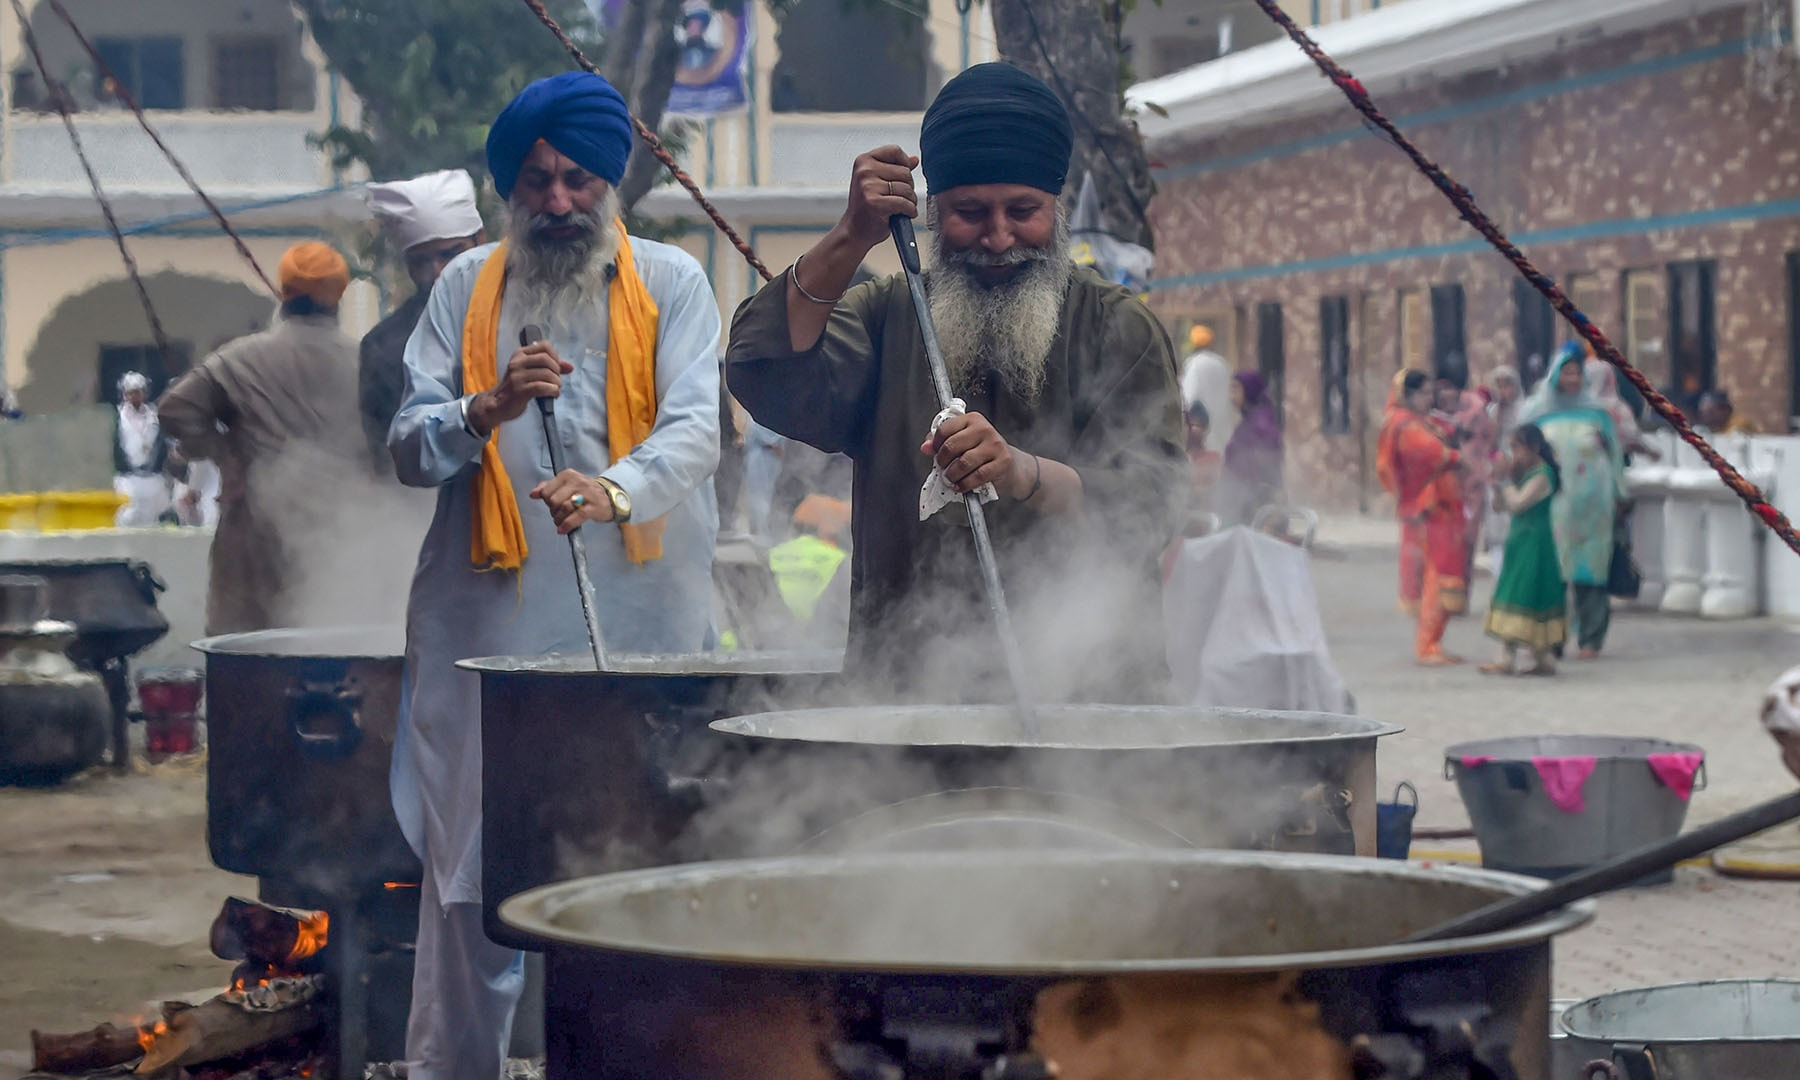 Sikh pilgrims prepare food for devotees at a shrine in Nankana Sahib, some 75 km west of Lahore, on November 7. — AFP